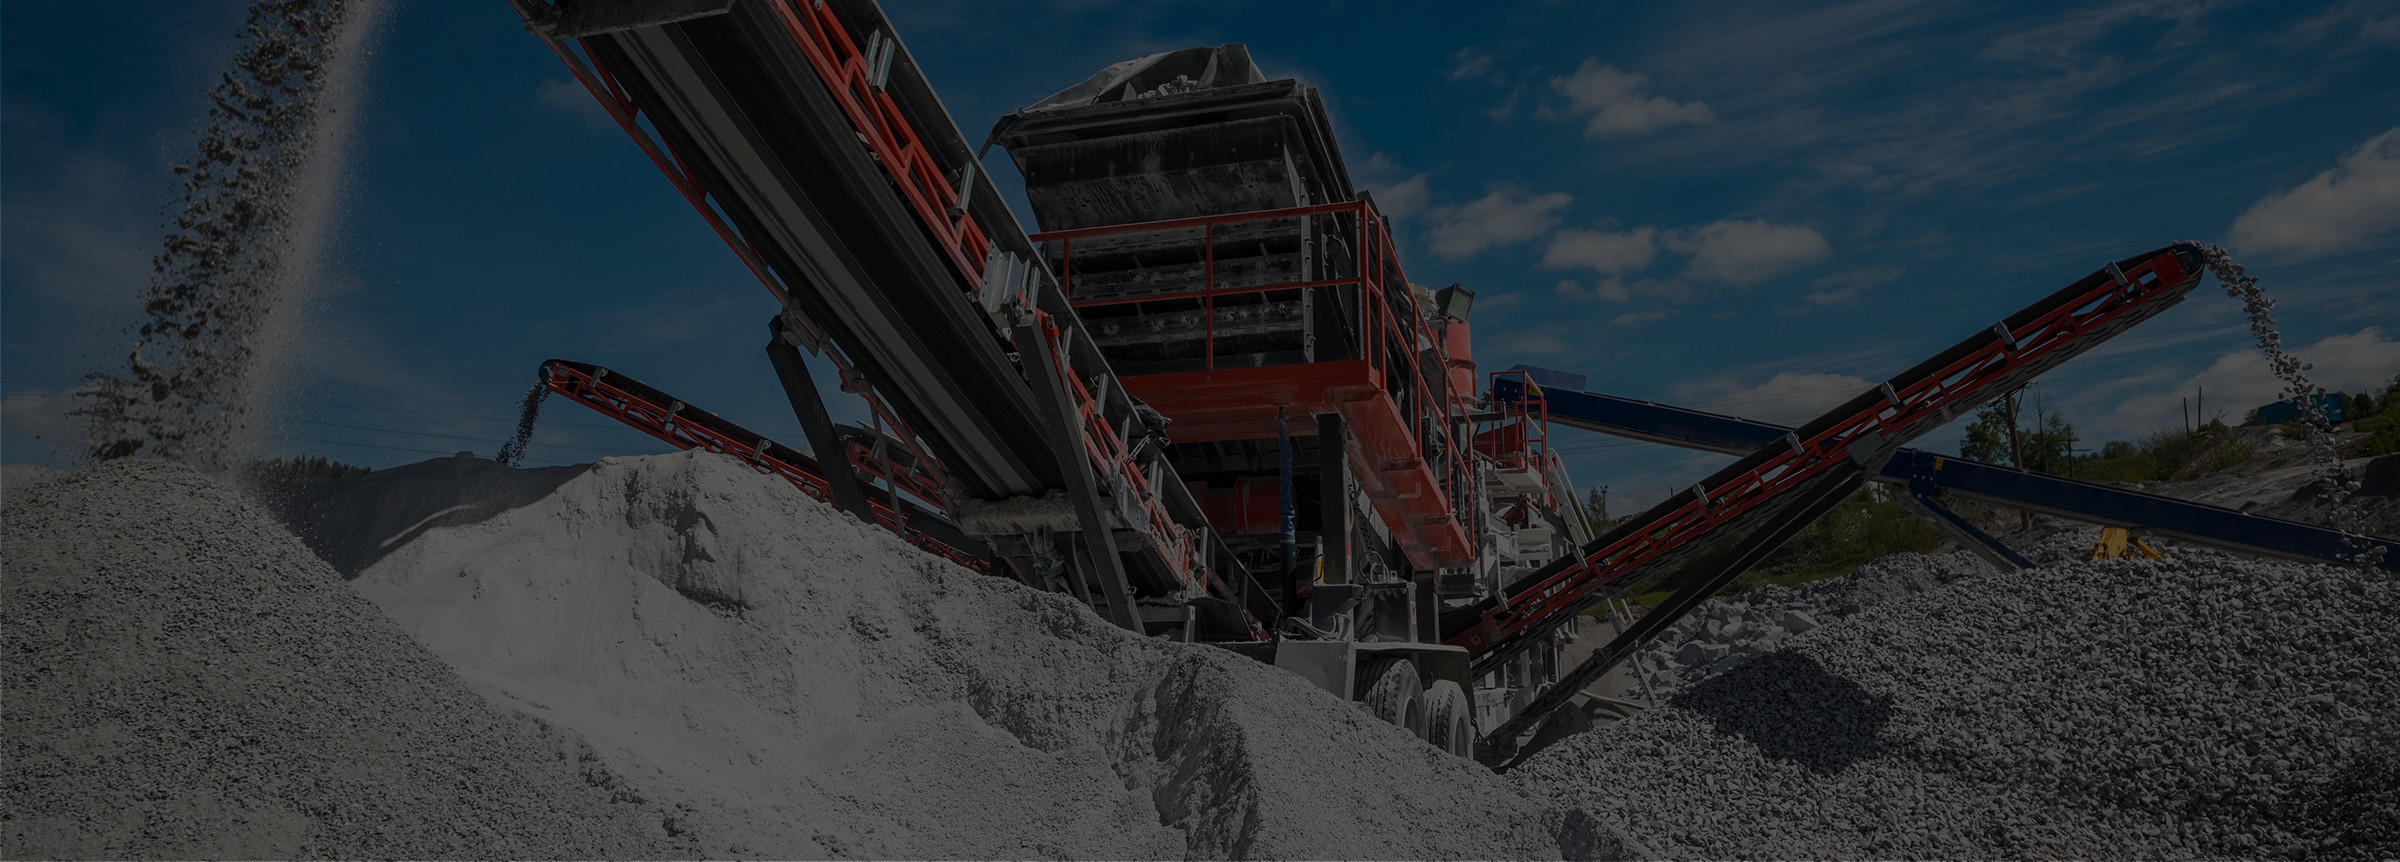 mining & construction air intake solutions